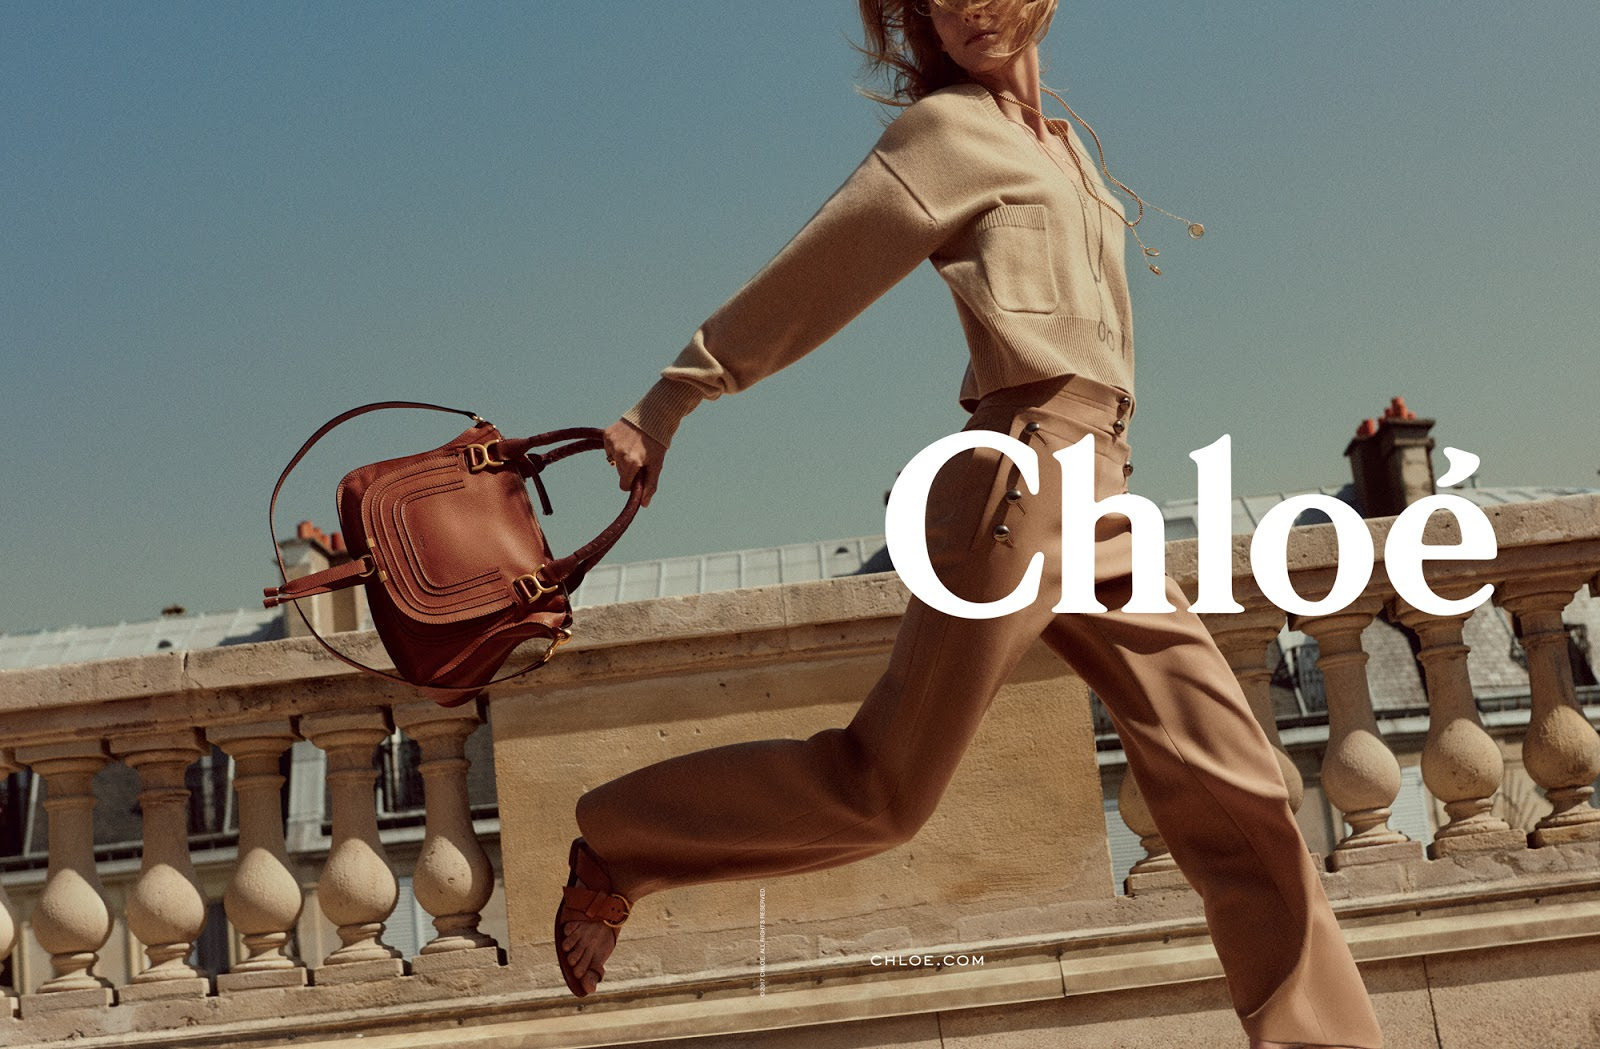 http://theimpression.com/wp-content/uploads/Chloe-fall-2017-ad-campaign-the-impression-14.jpg